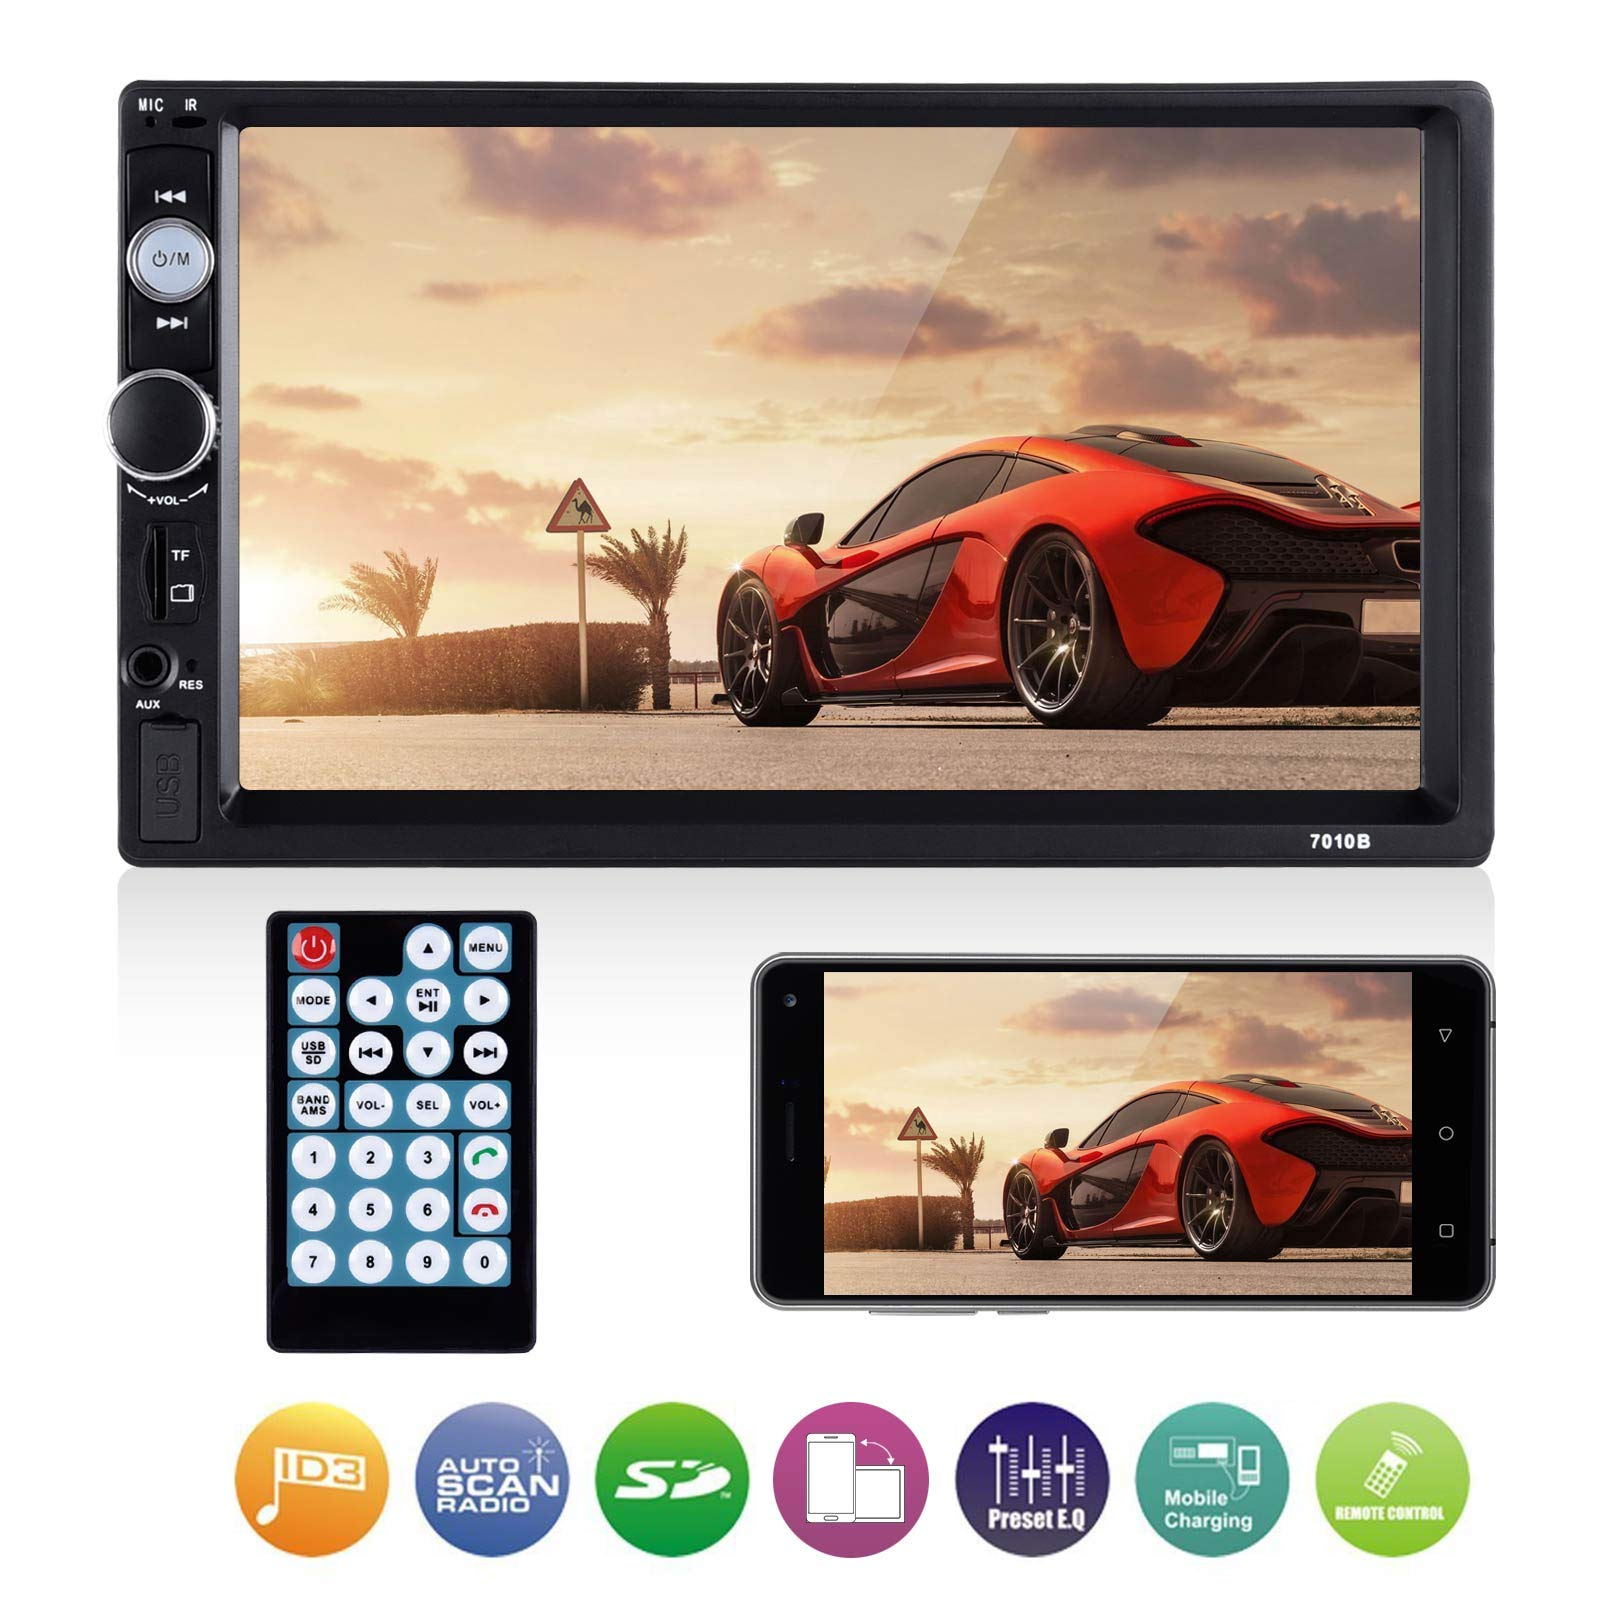 Universal Double Din Car Stereo, ESSGOO Mirror Link 7Inch Capacitive Touch Screen in Dash Car Radio Receiver Audio Video Player Supports USB/FM/TF/BT/AUX/MP5 Multimedia with Remote Control